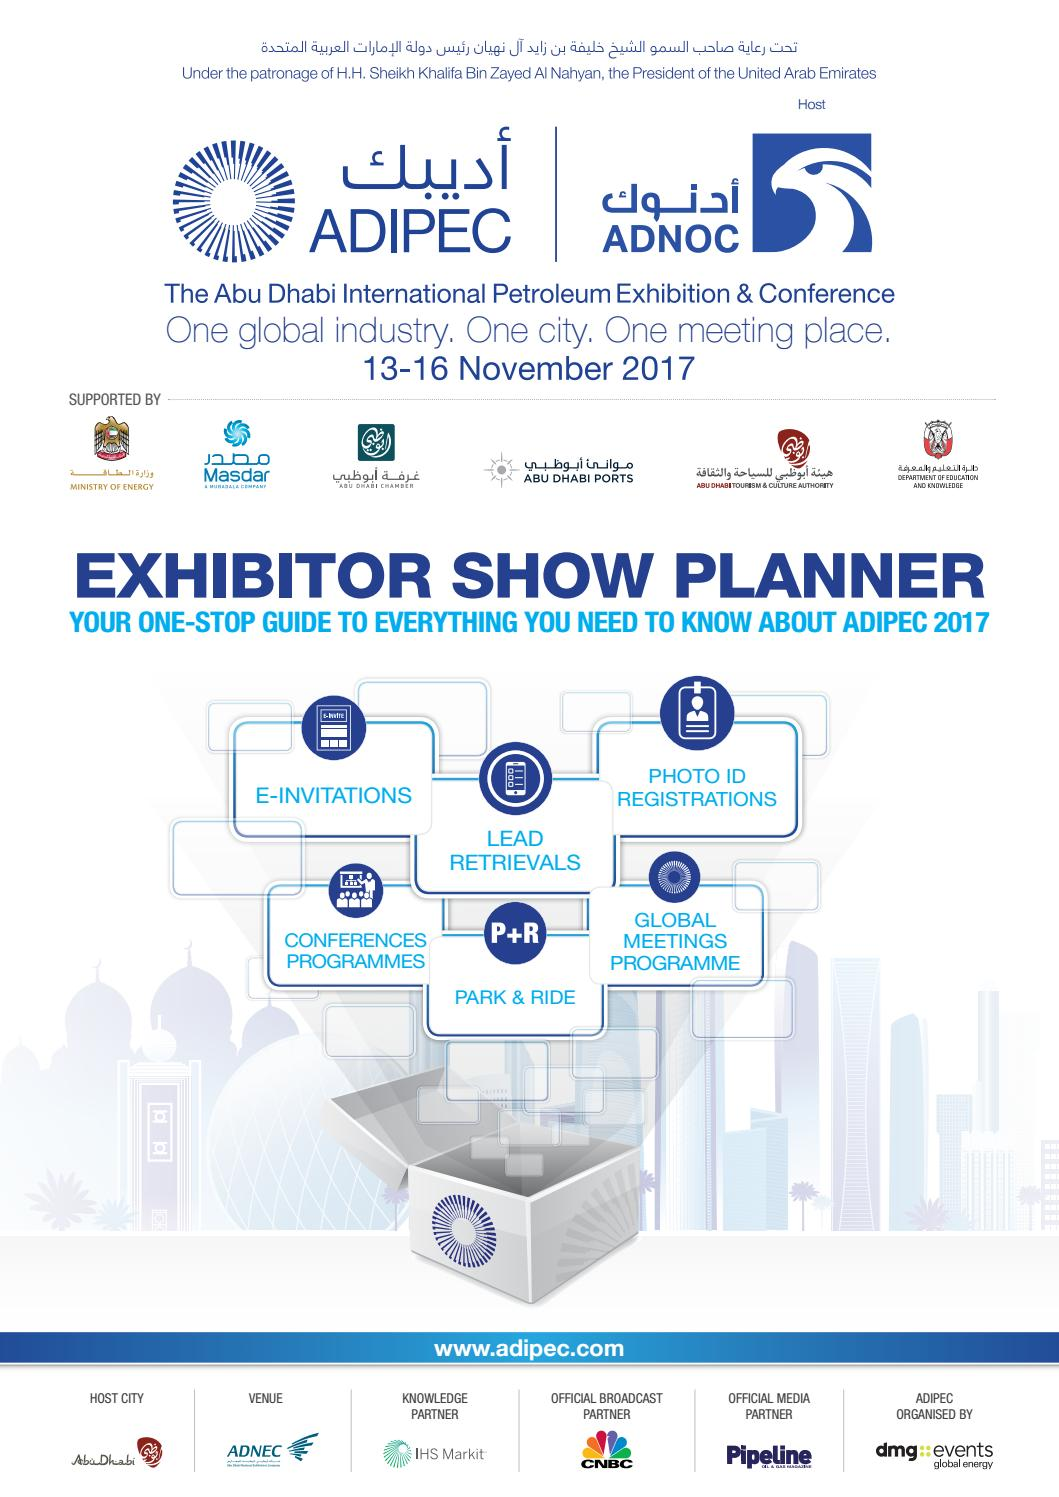 Adipec Exhibitor Show Planner 2017 V7 28 Pages D15a105d 1e05 4e0f 9c89 2fb3cbcd7864 By Adipec Issuu